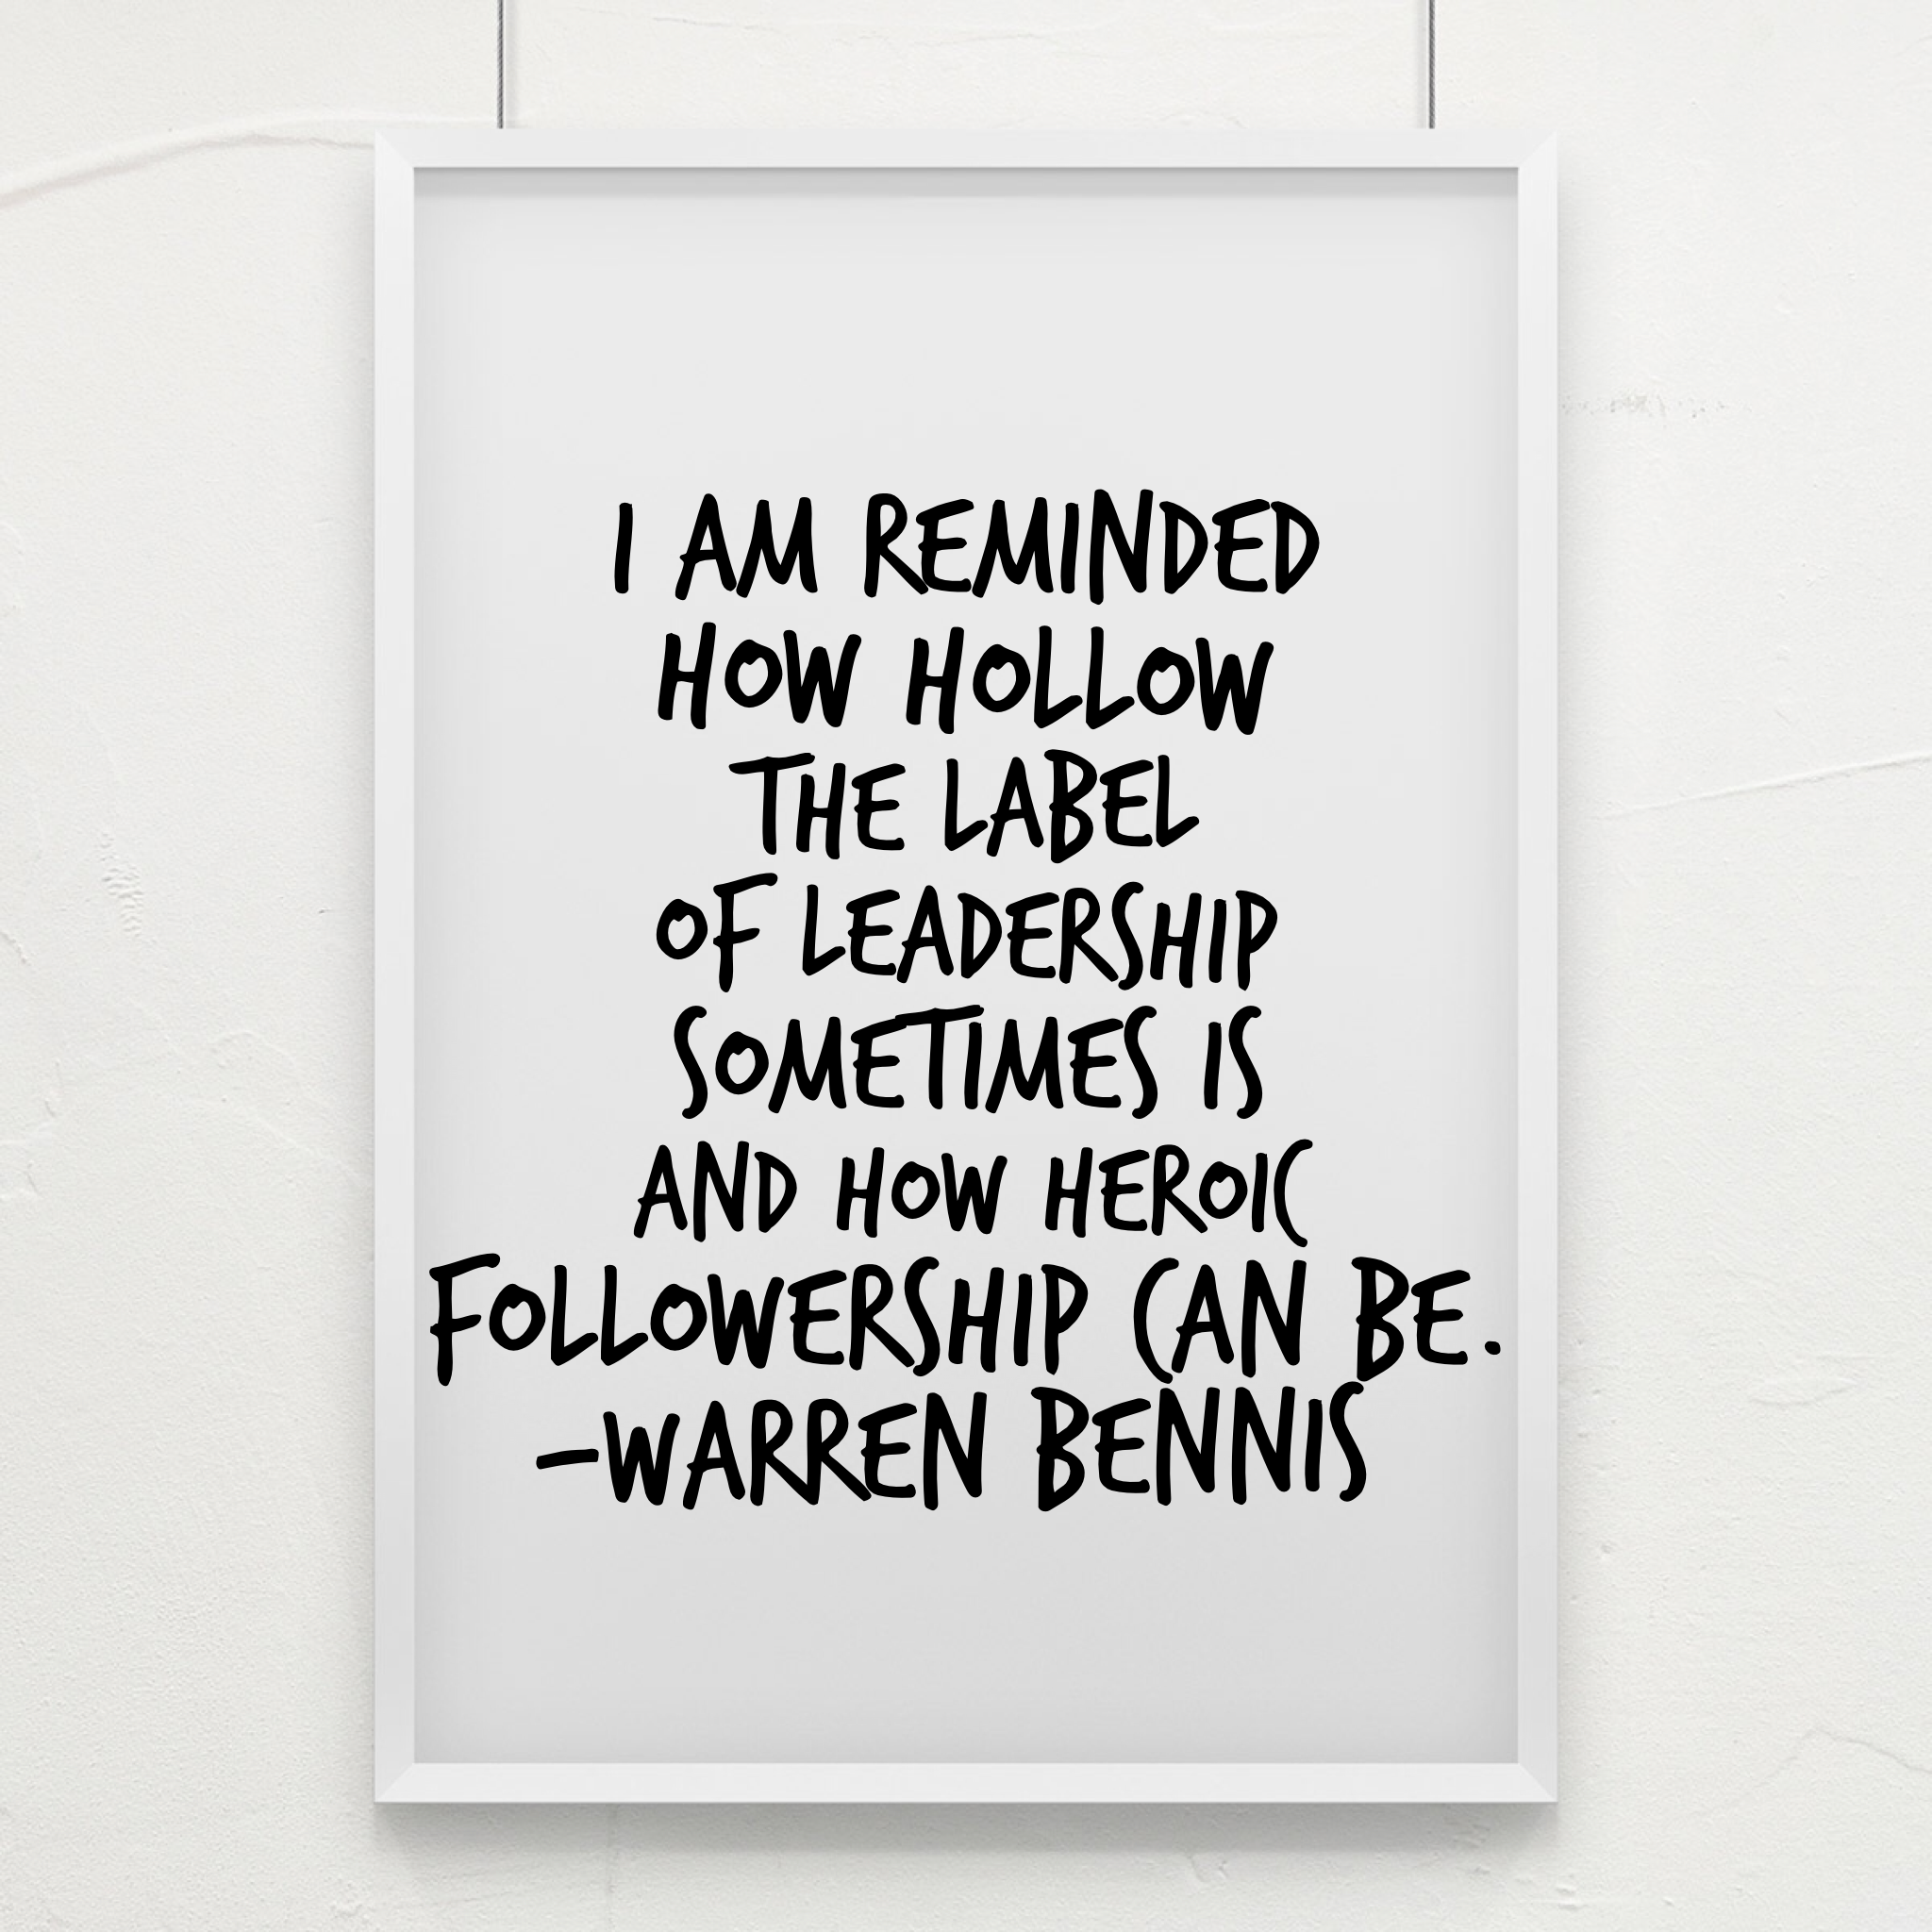 i am reminded how hollow the label of leadership sometimes is and i am reminded how hollow the label of leadership sometimes is and how heroic followership can be warren bennis quotes i am